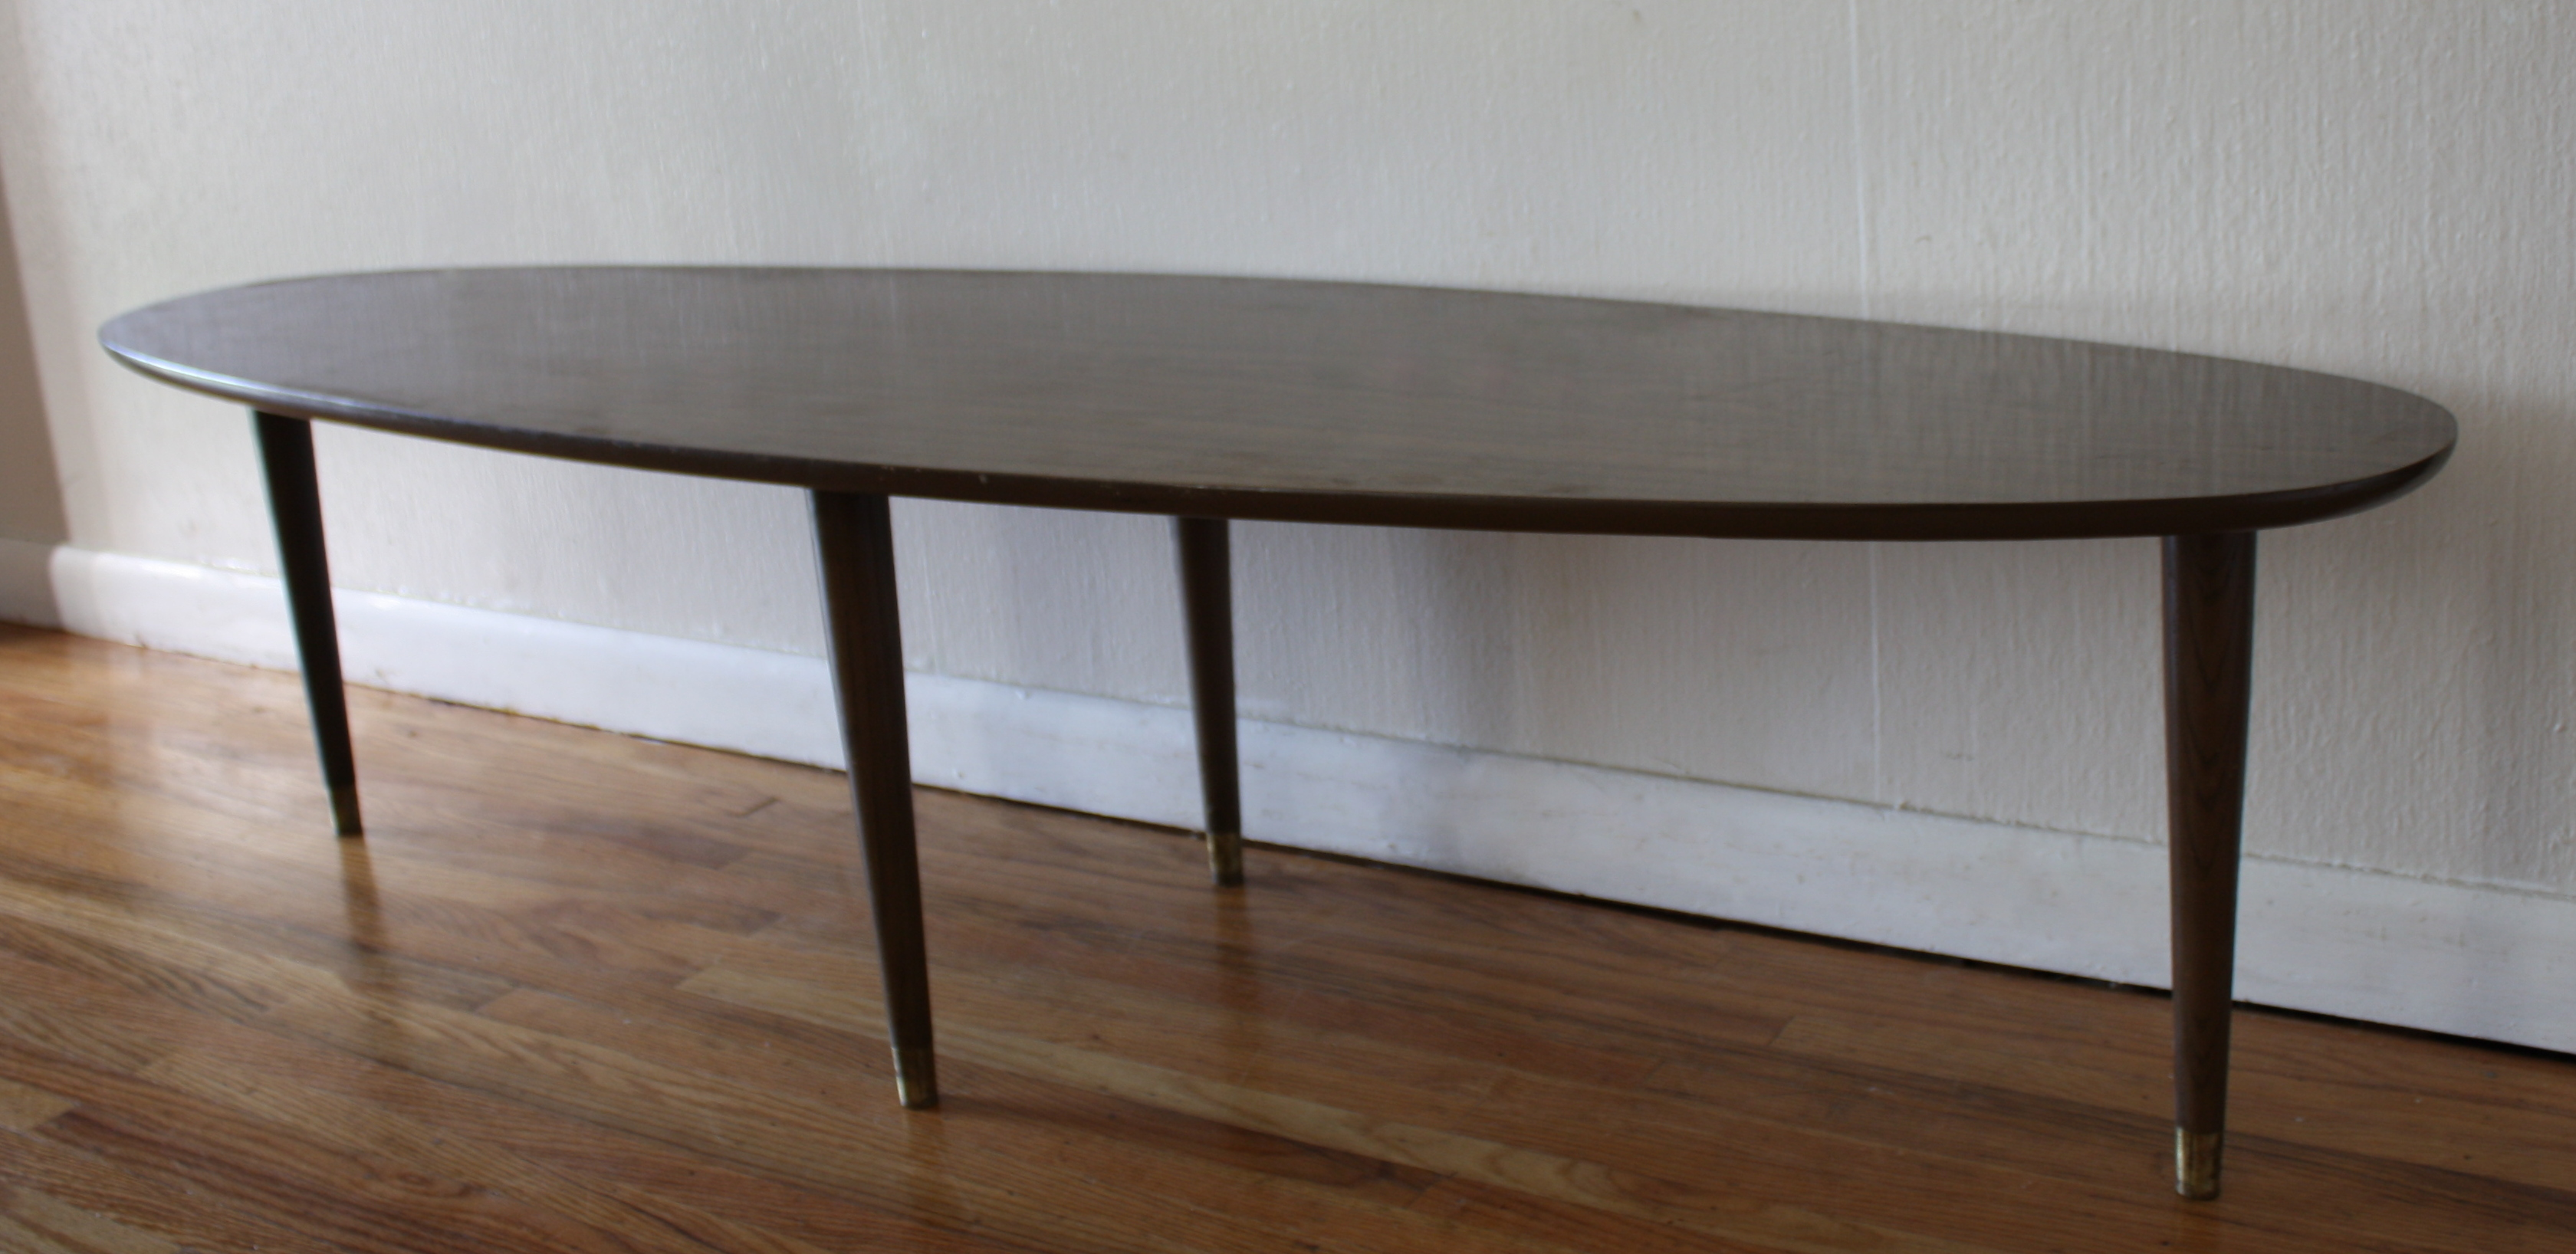 Vintage Surfboard Coffee Tables - JustCollecting